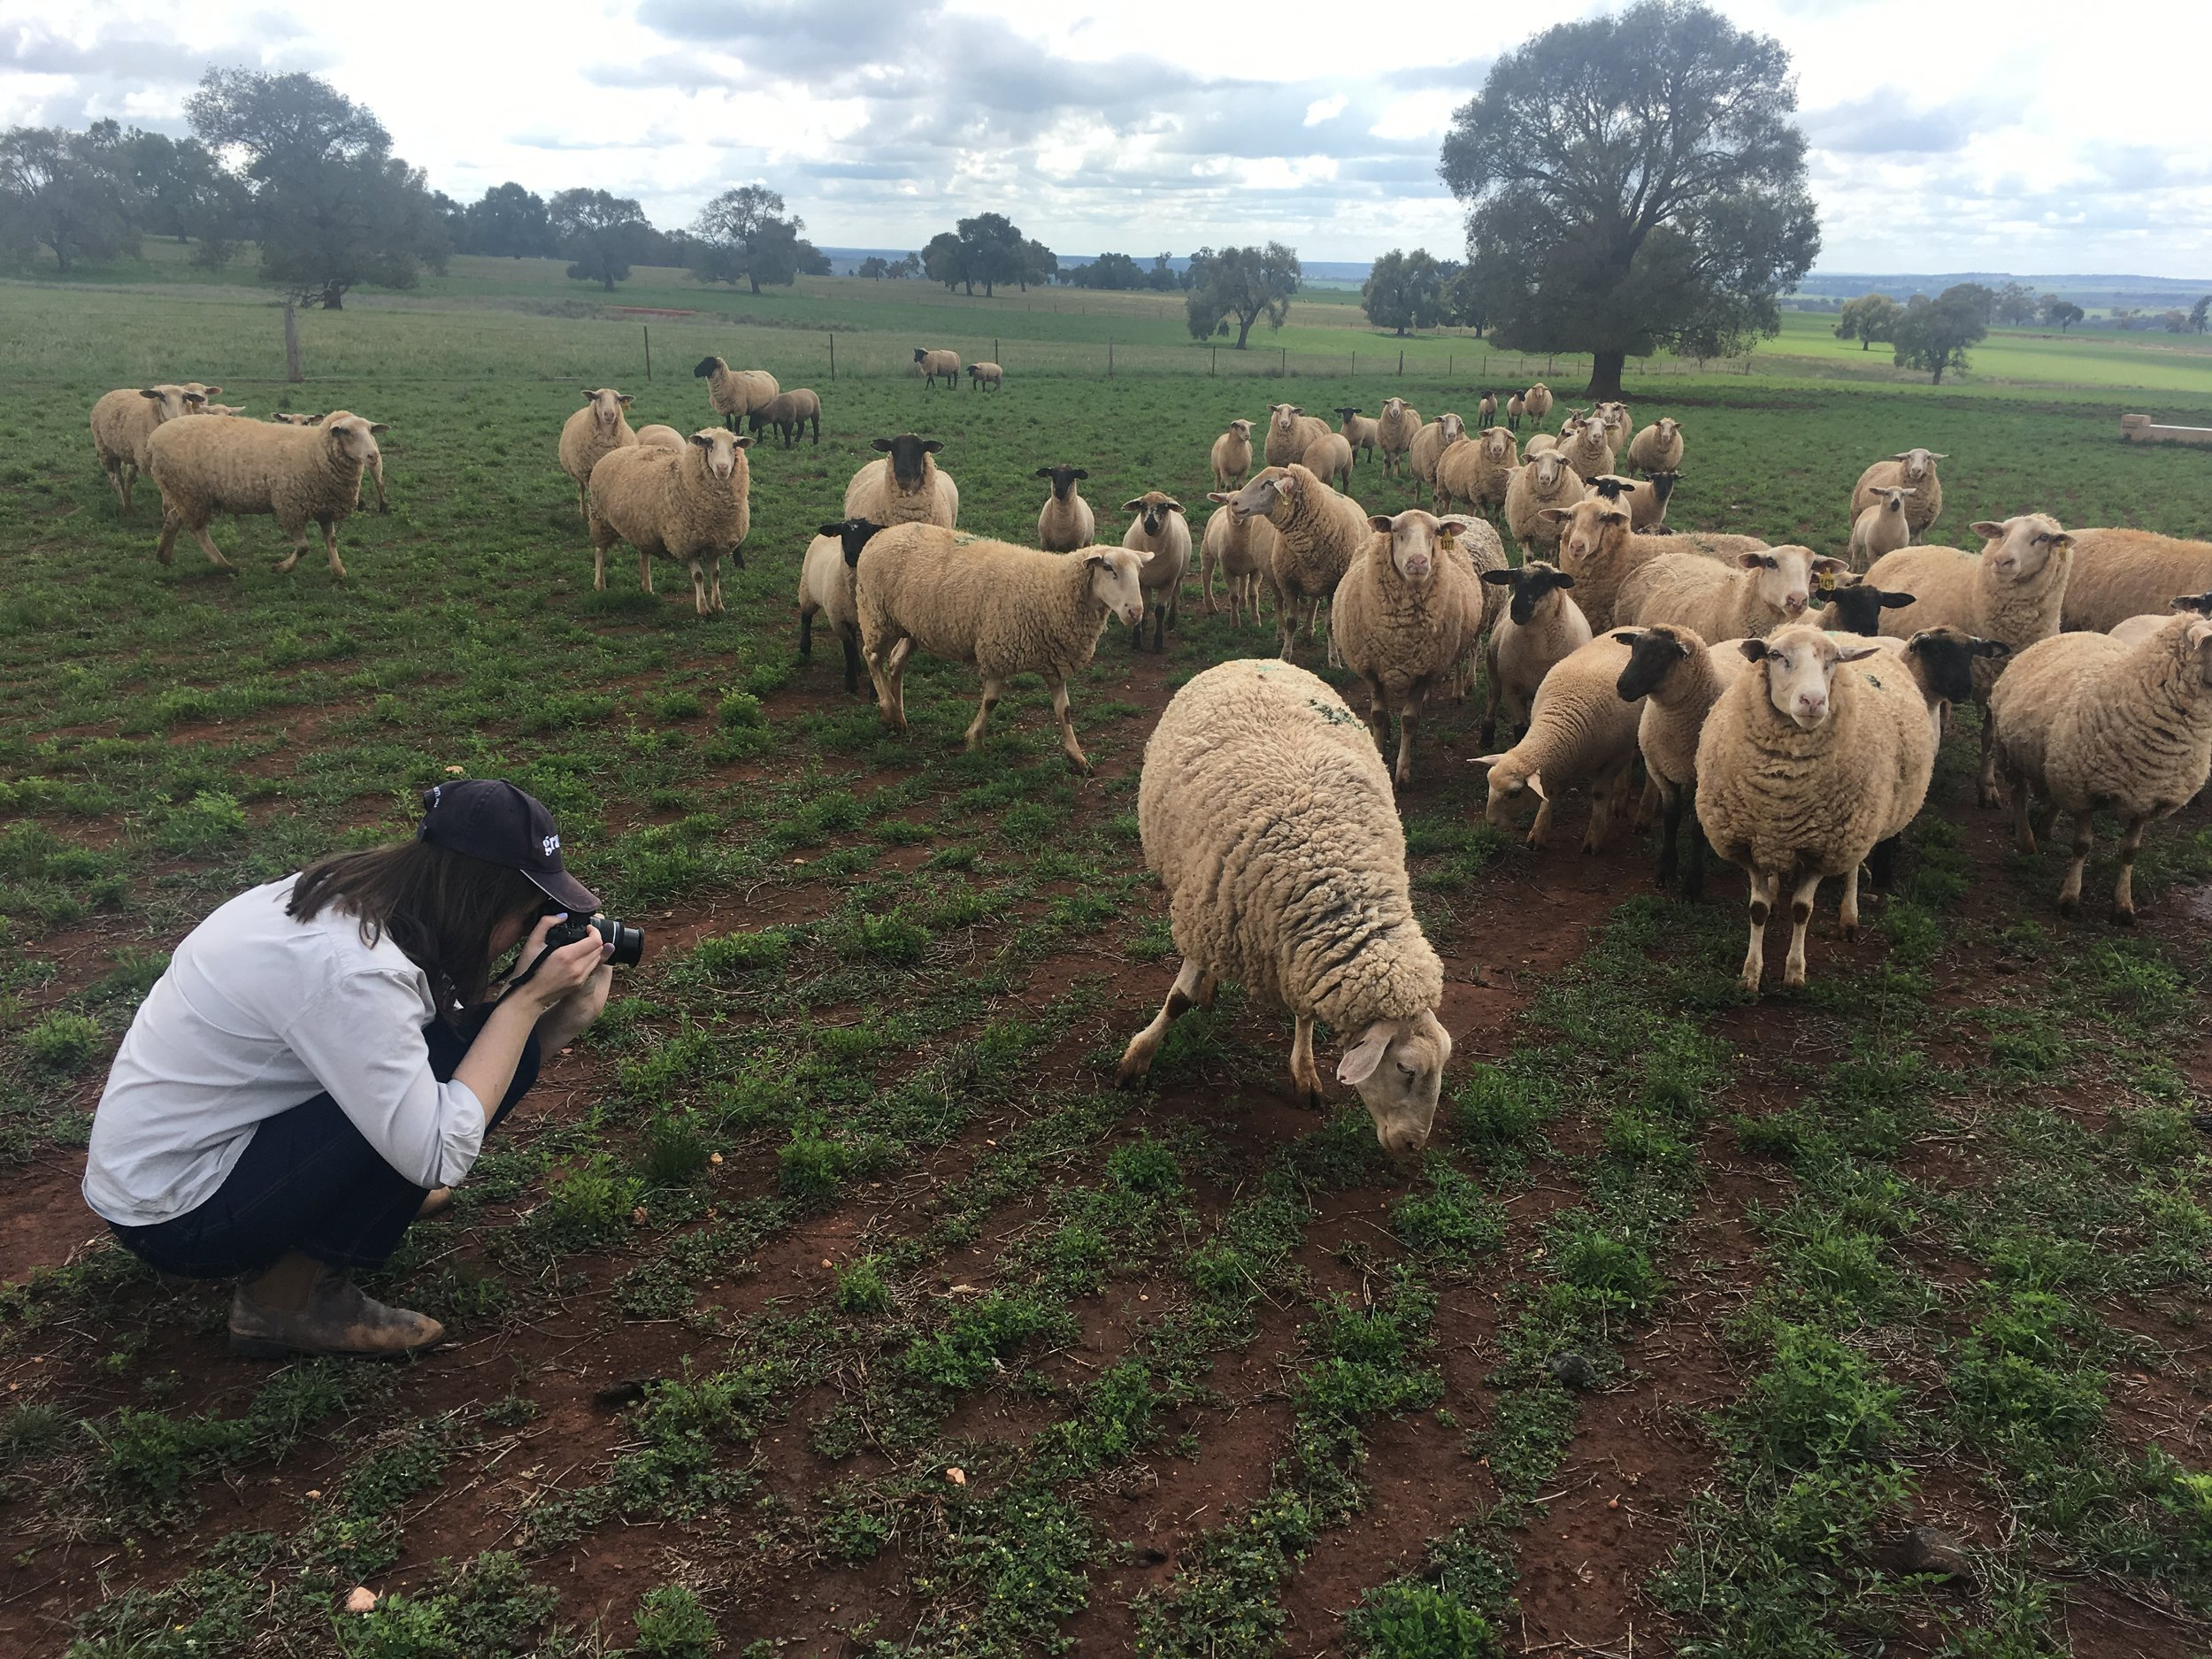 Benita Woodley taking photographs on her family's property. Image: Supplied.